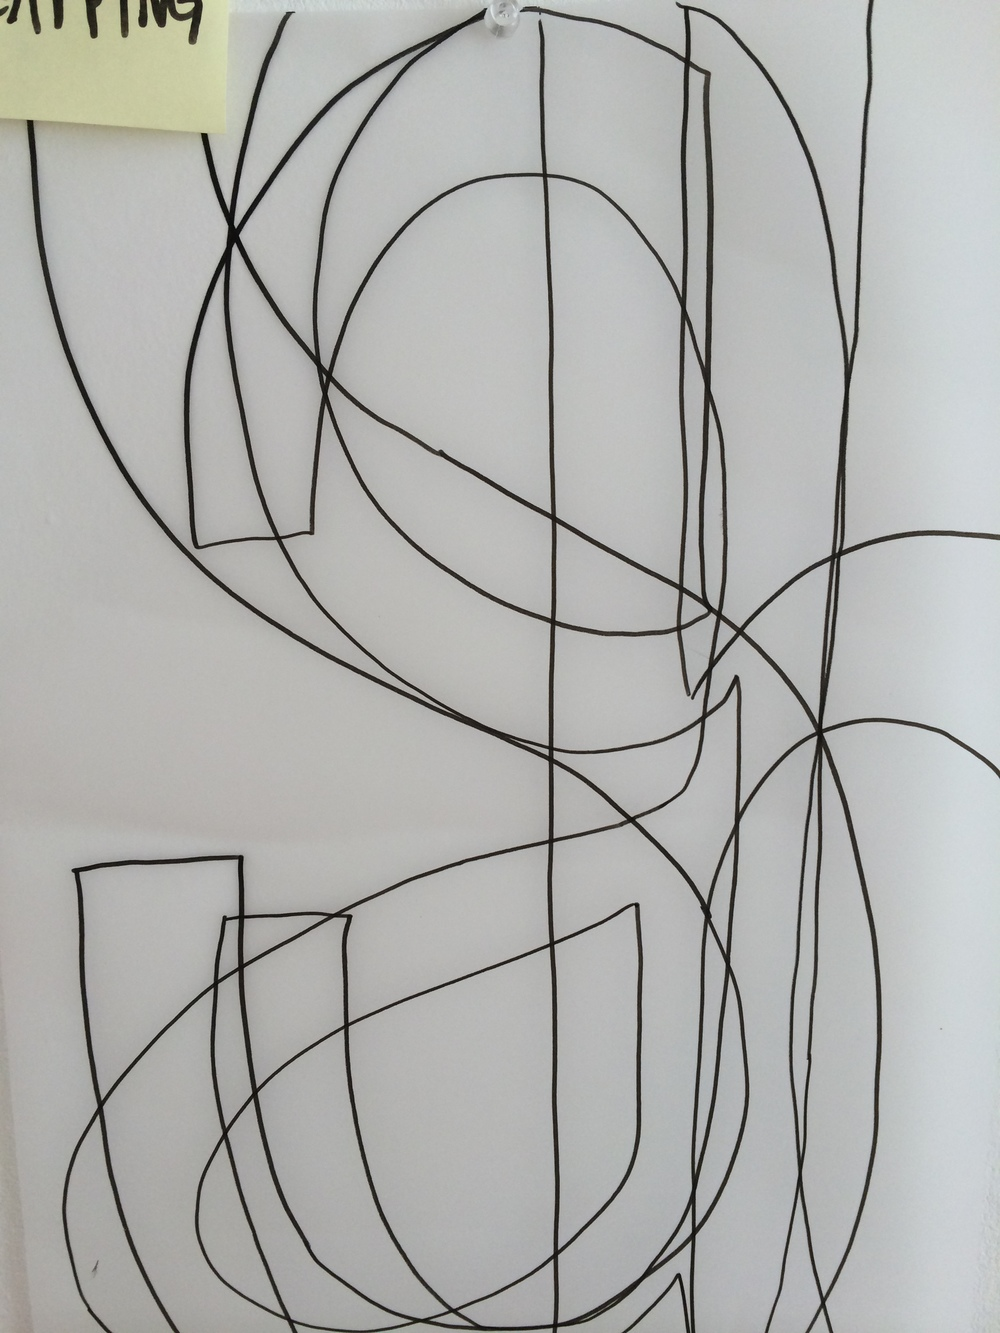 8/6/14 Tracing overlapping text